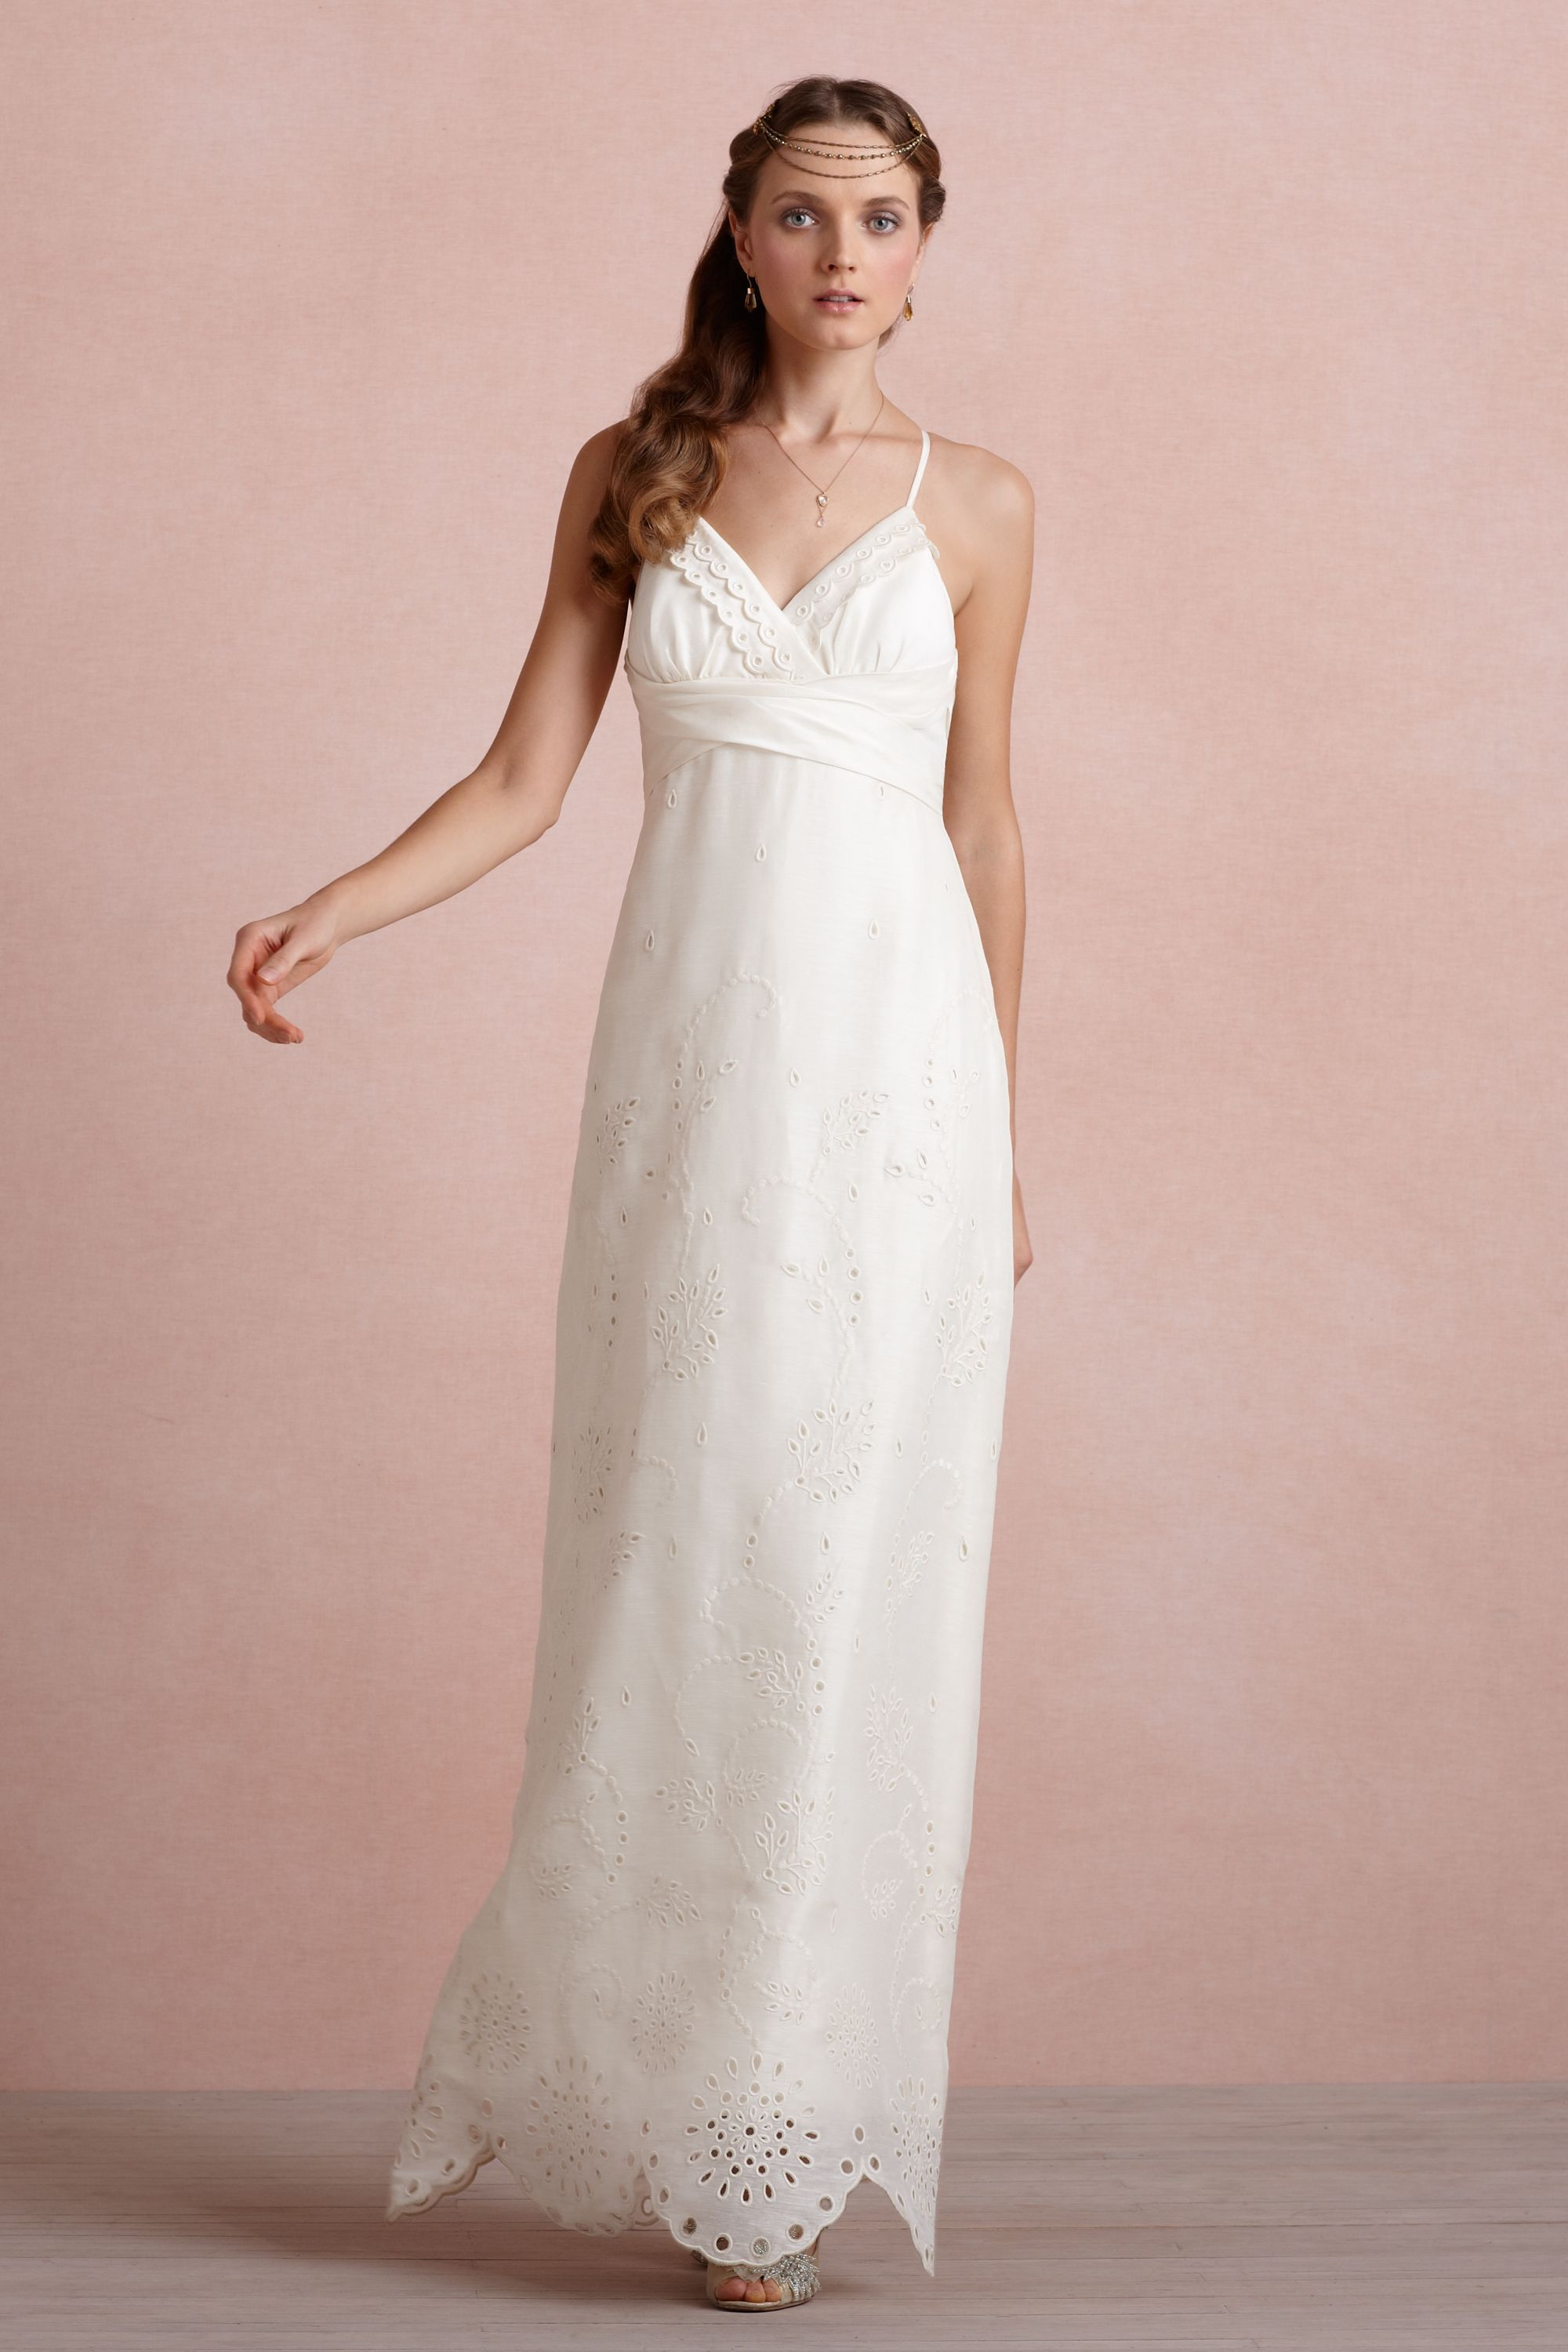 This dress with no bow and a simpler bust area | Wedding clothes ...